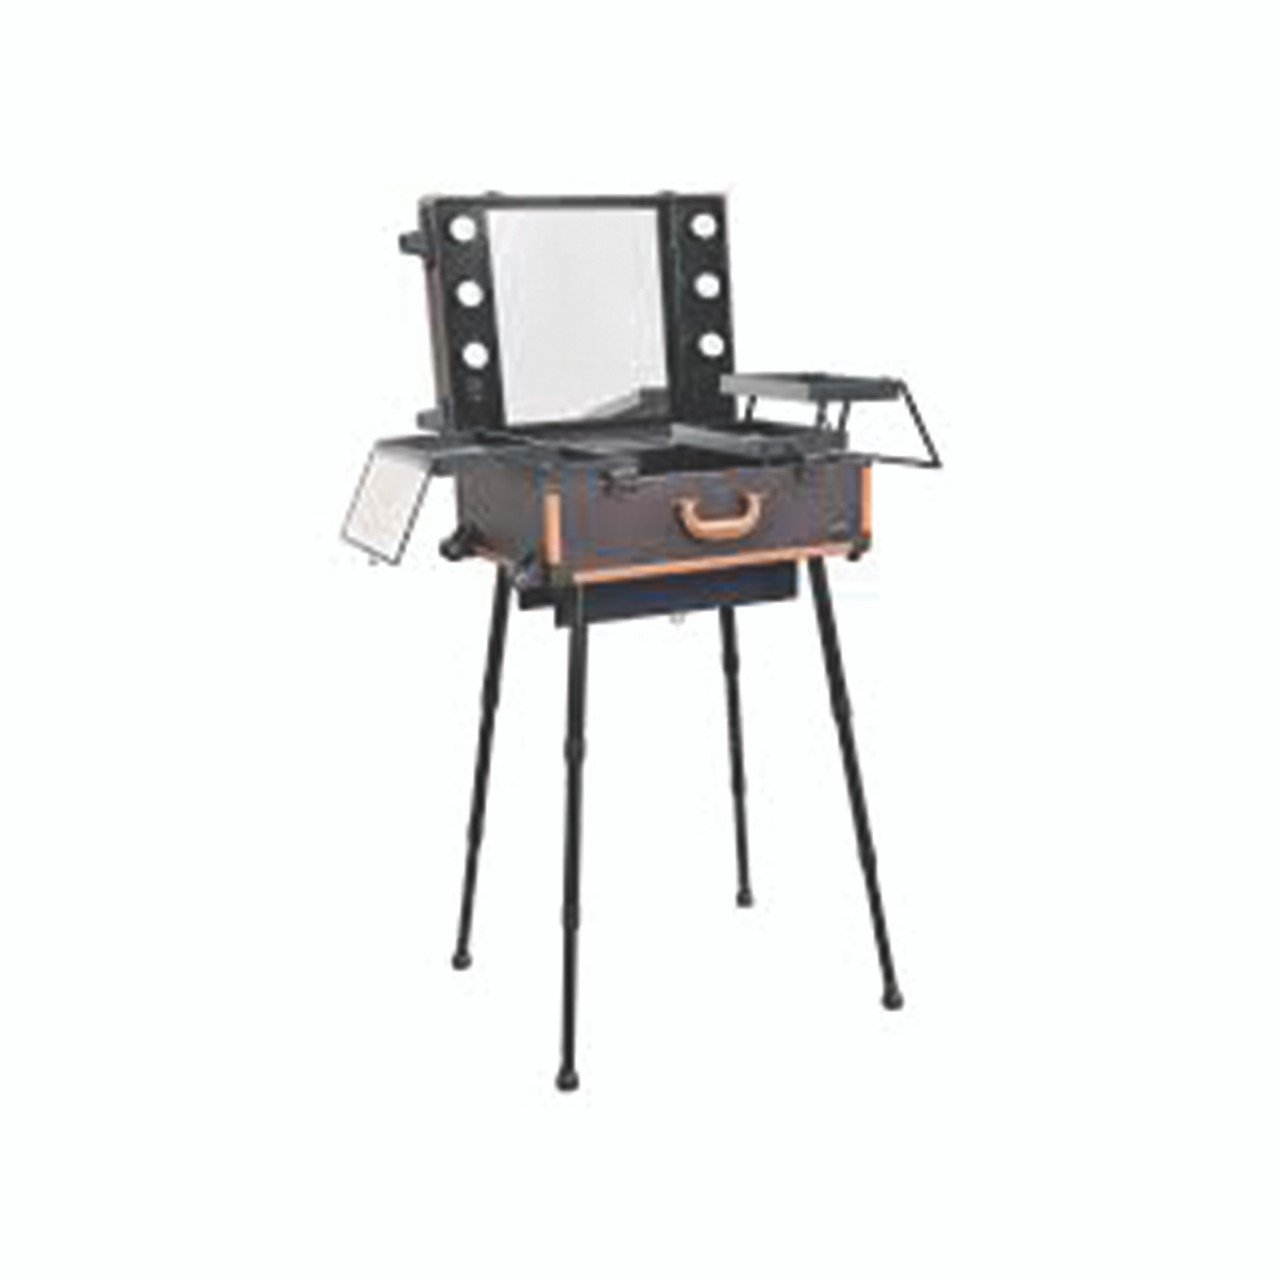 Portable Make-up Table w/ Wheels (Make up Station)